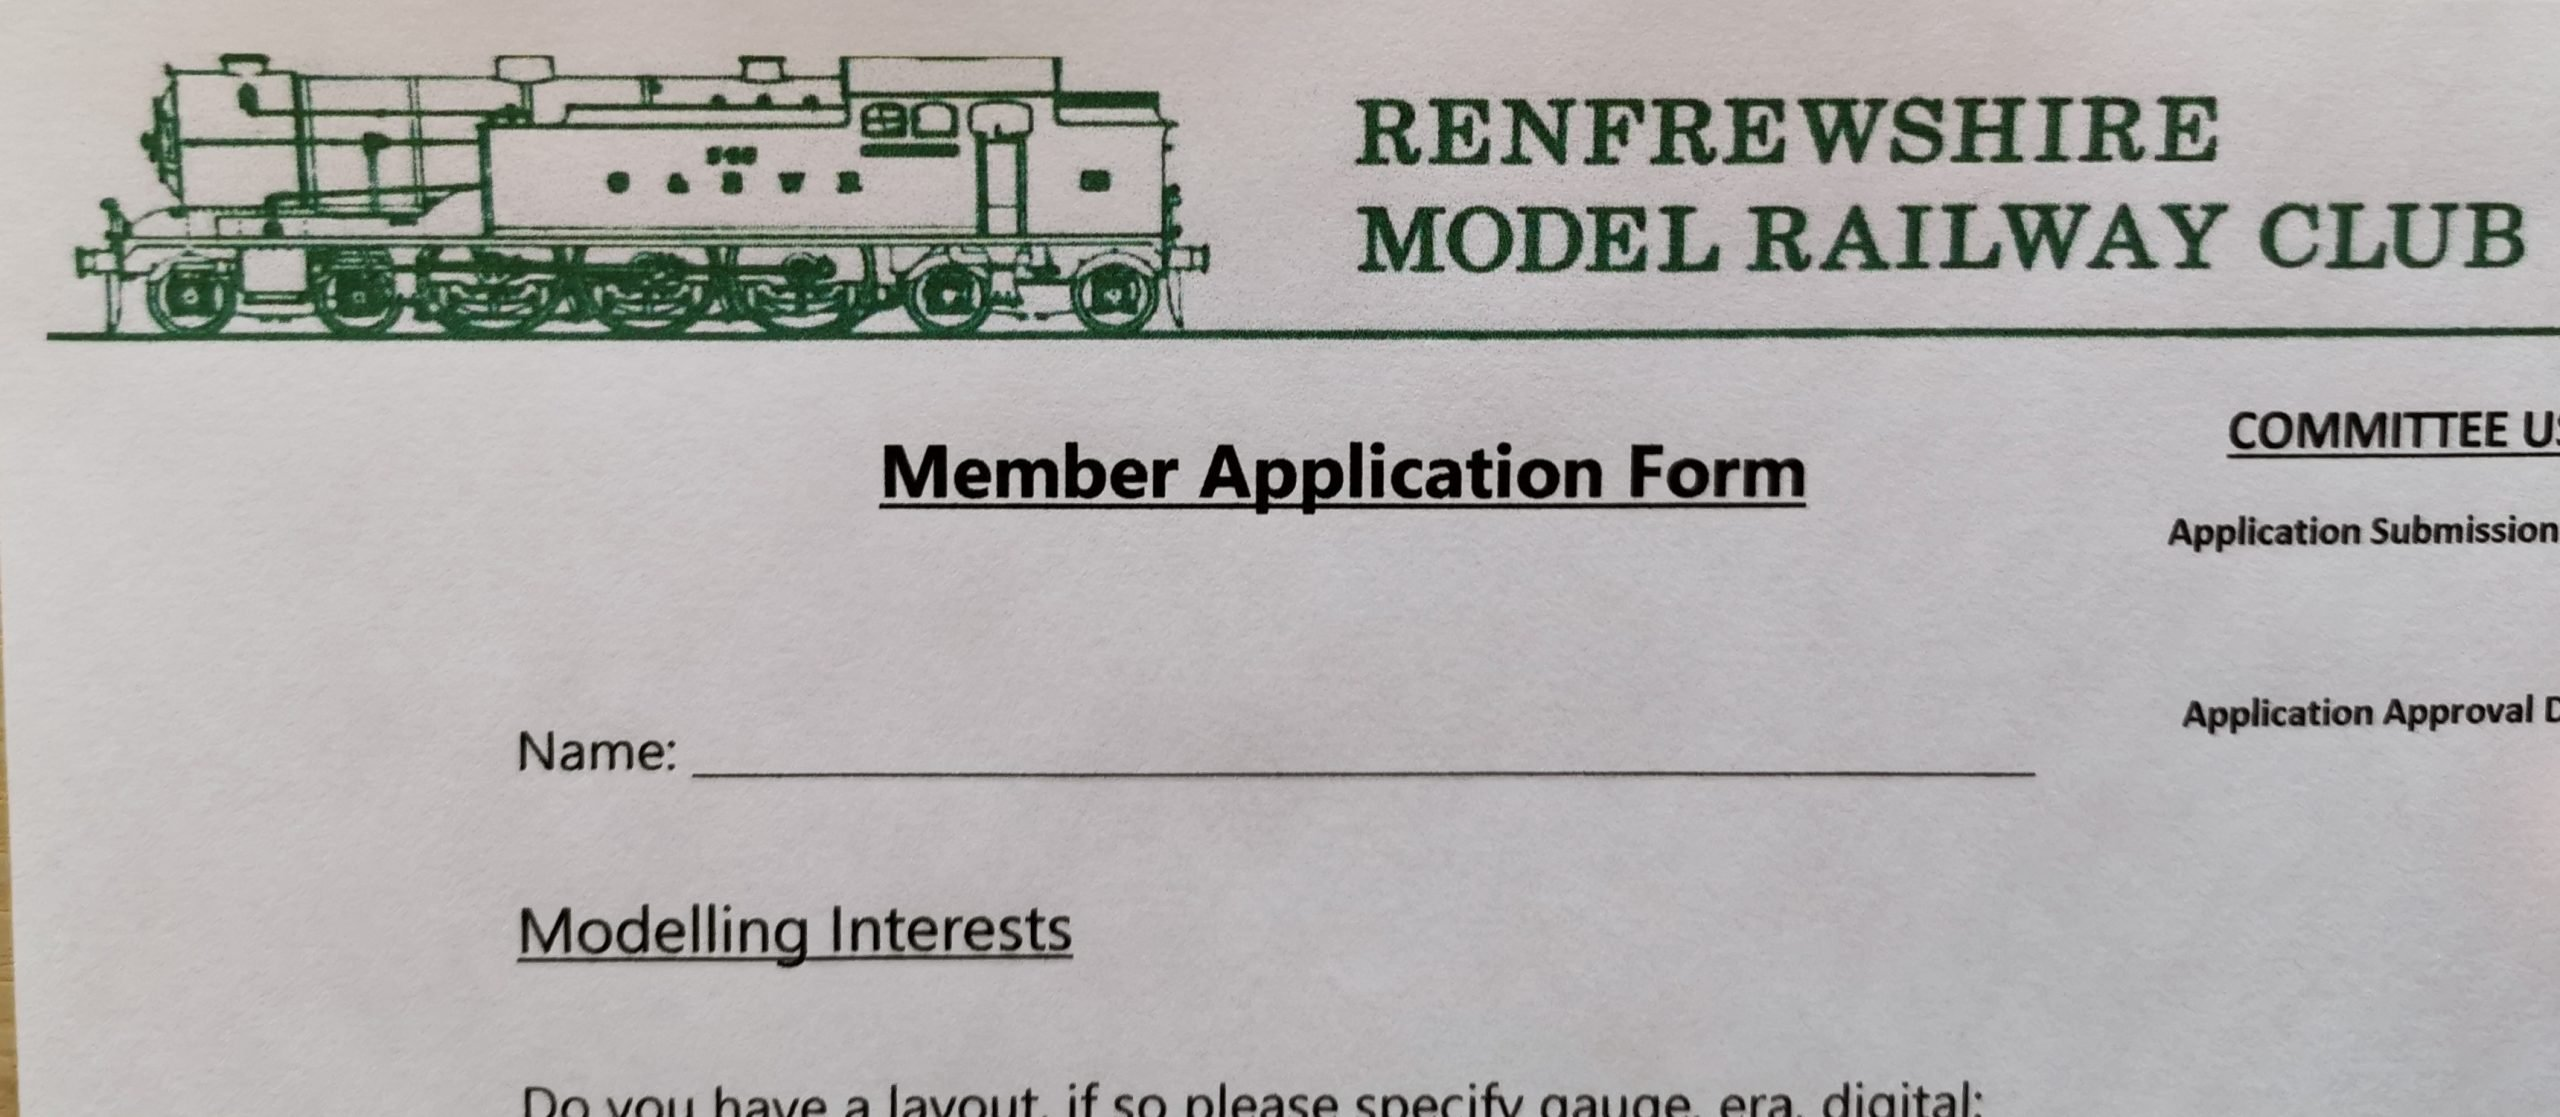 Logo on application form of Renfrewshire Model Railway club